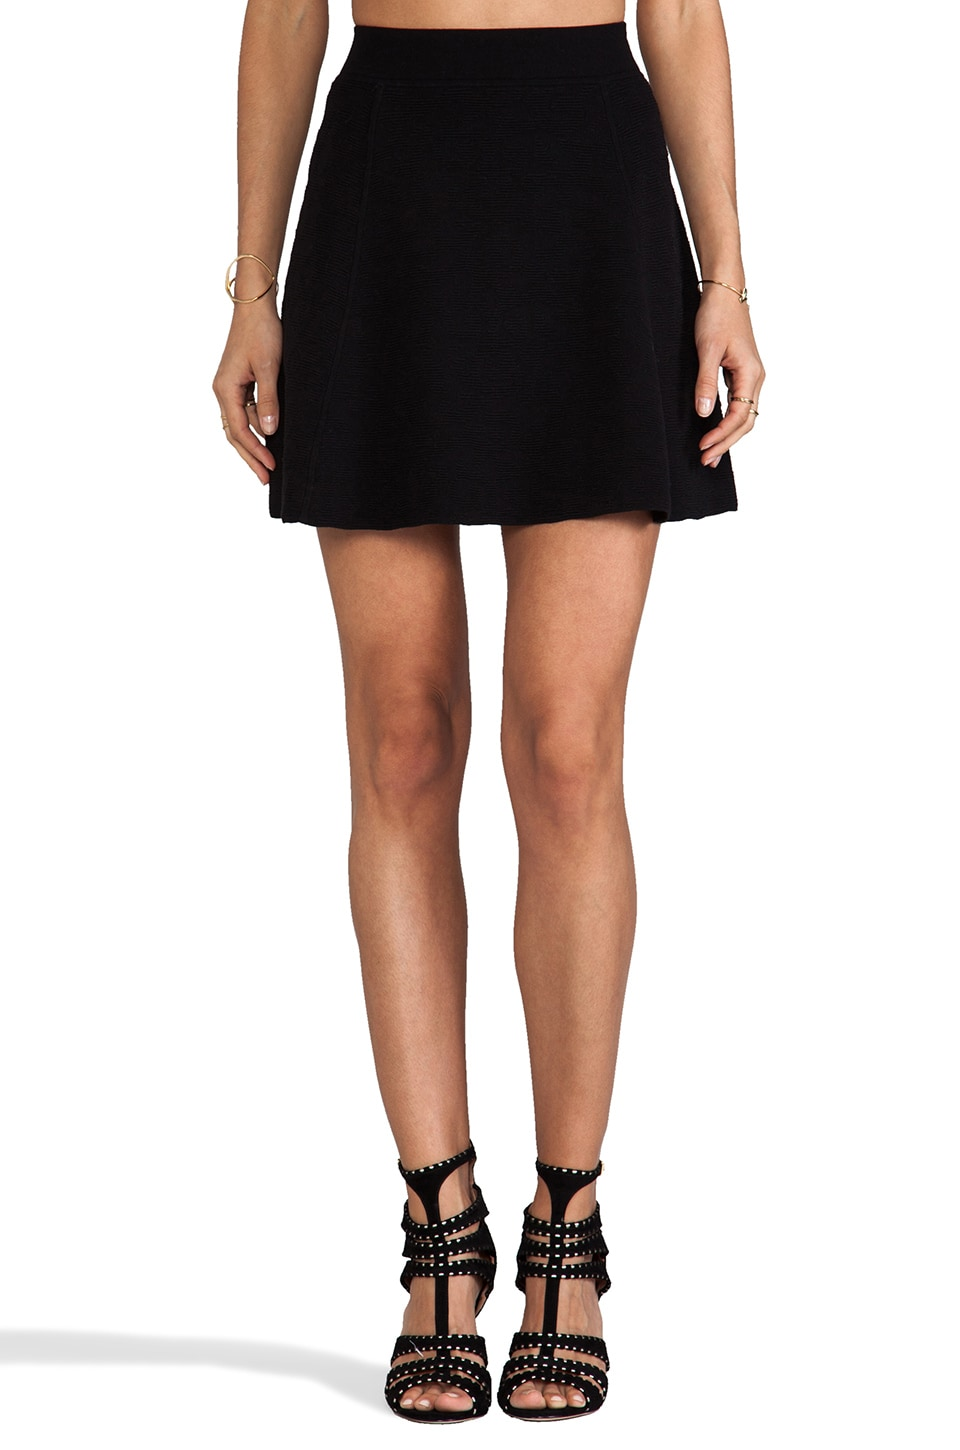 Theory Doreene B Skirt in Black